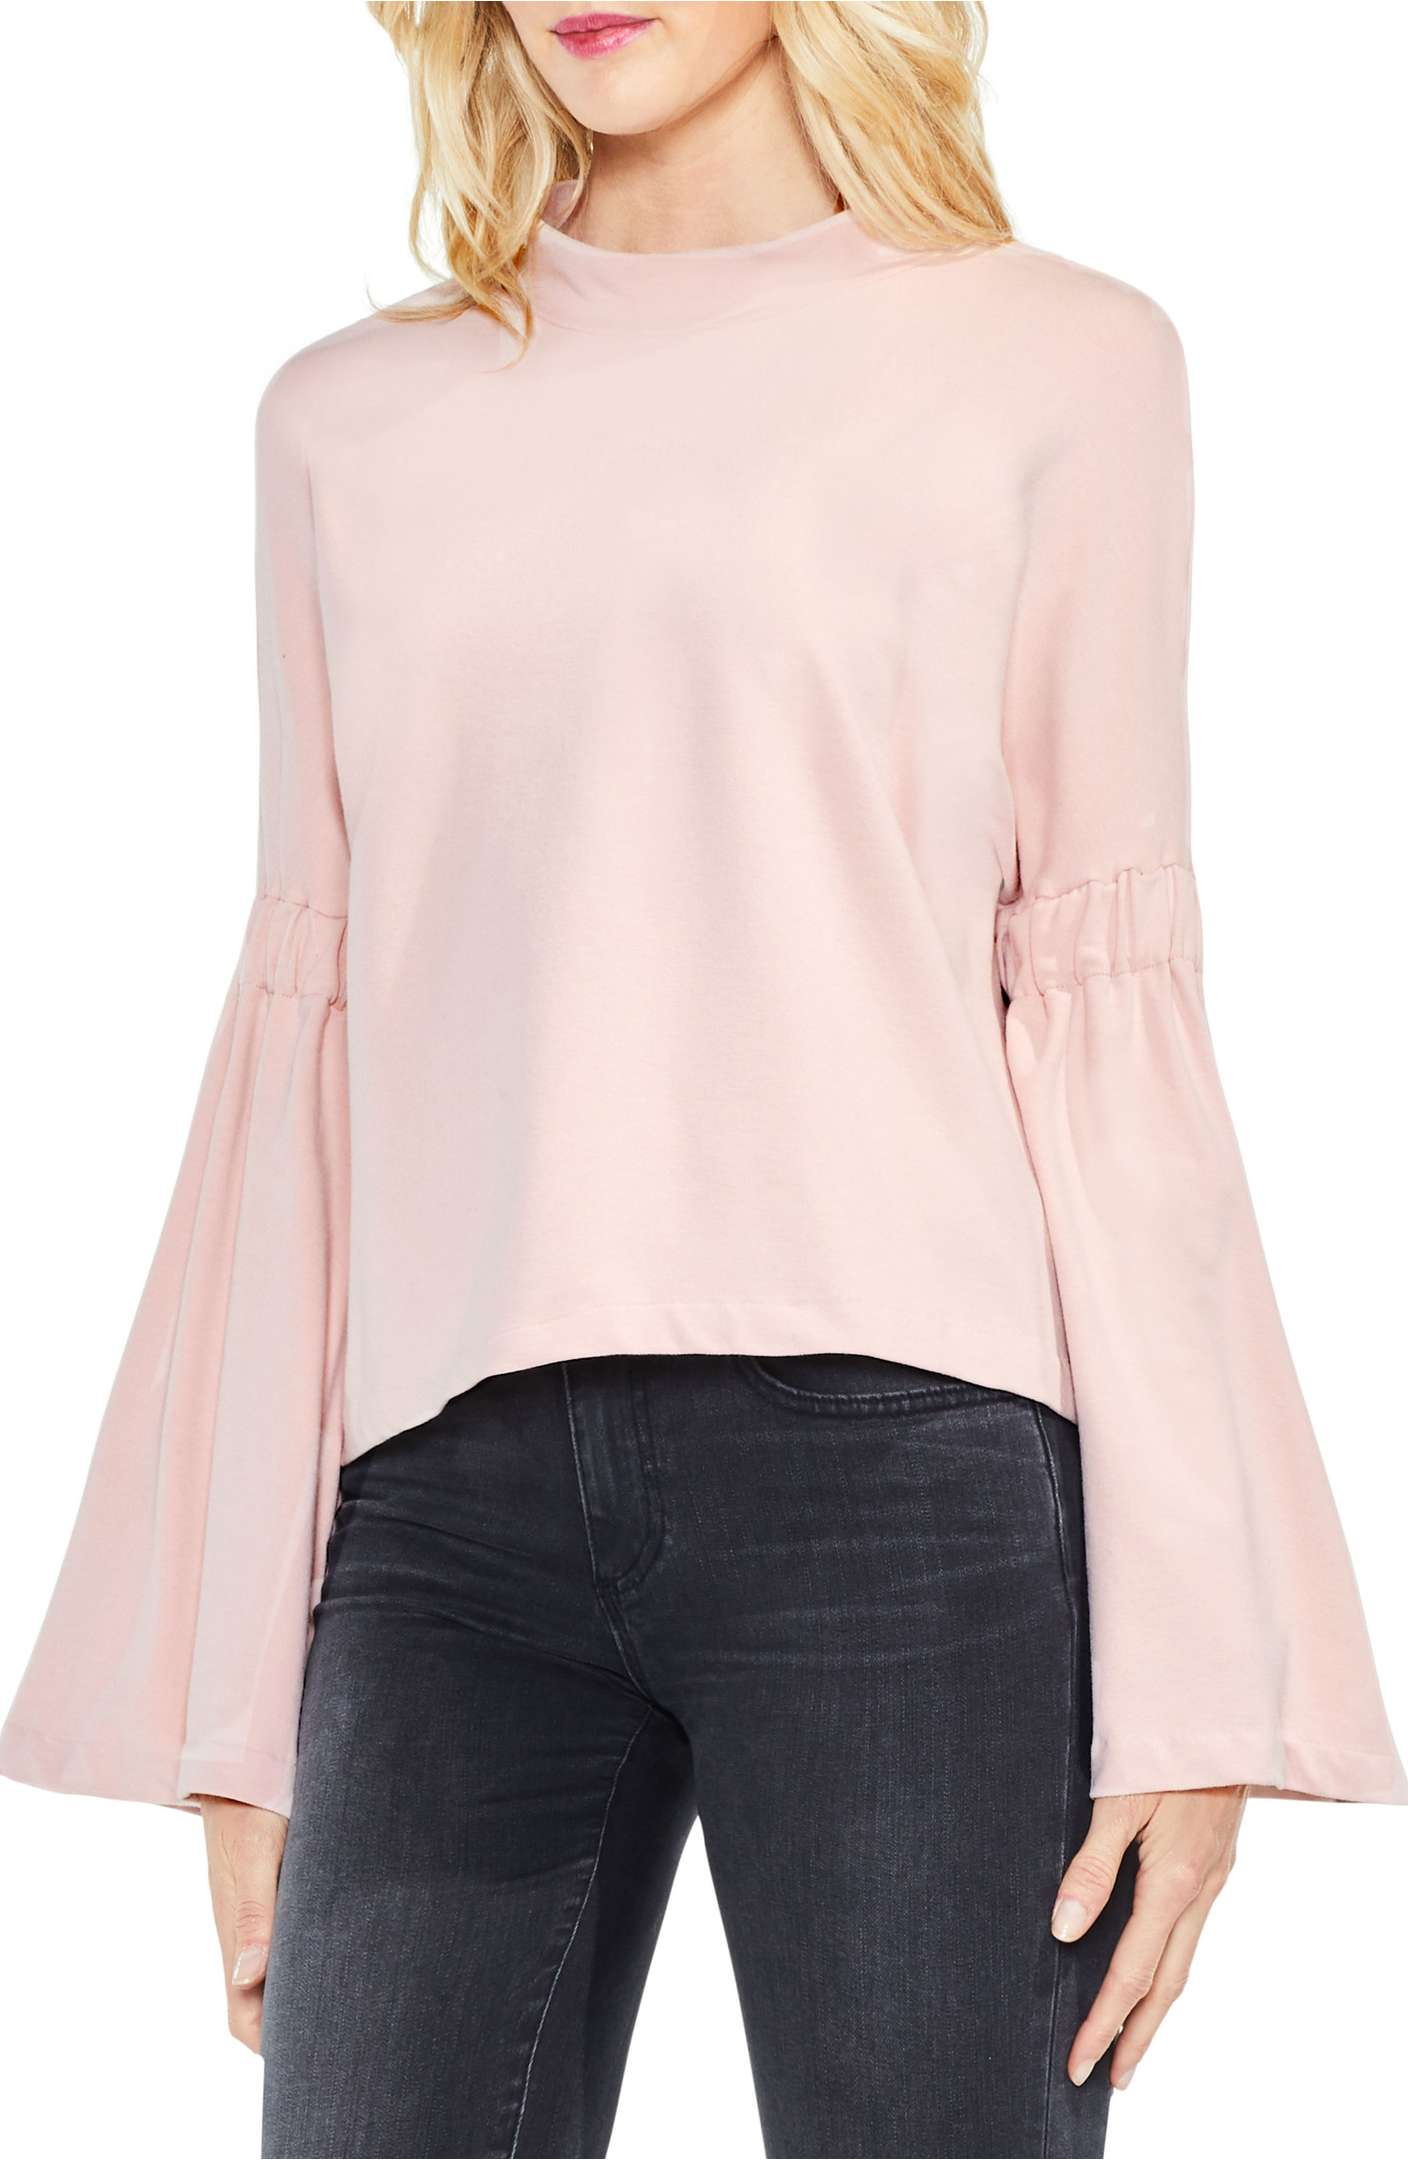 The color blush makes me smile. The most amazing blush tops, jackets and scarves for Fall